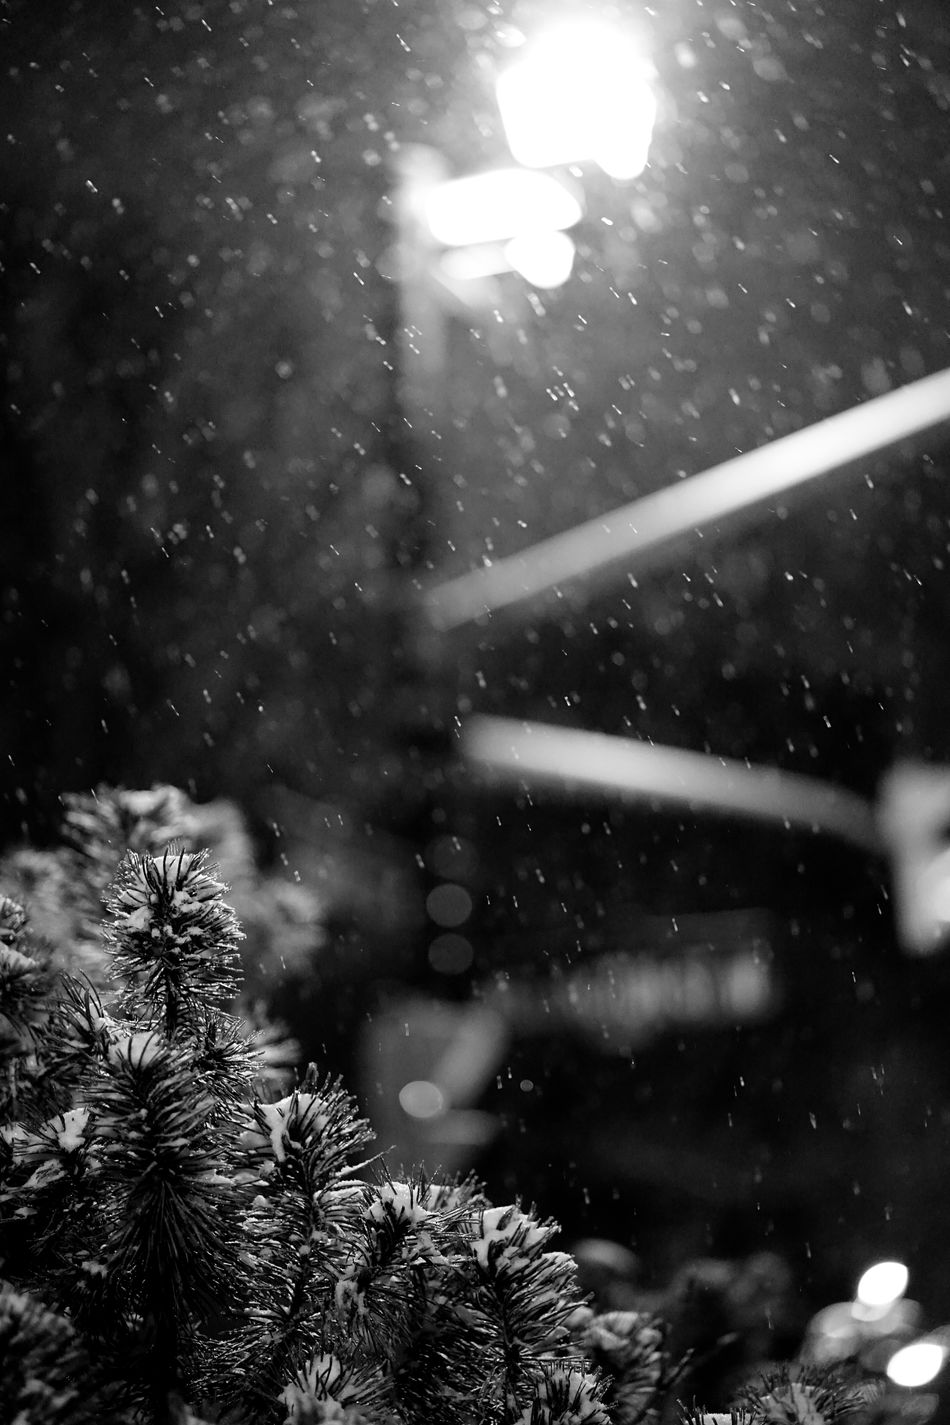 snowy night in Canada Black And White Black And White Photography Cold Down Downtown Frigid Lights Monochrome No People Outdoors Sing Snow Tree